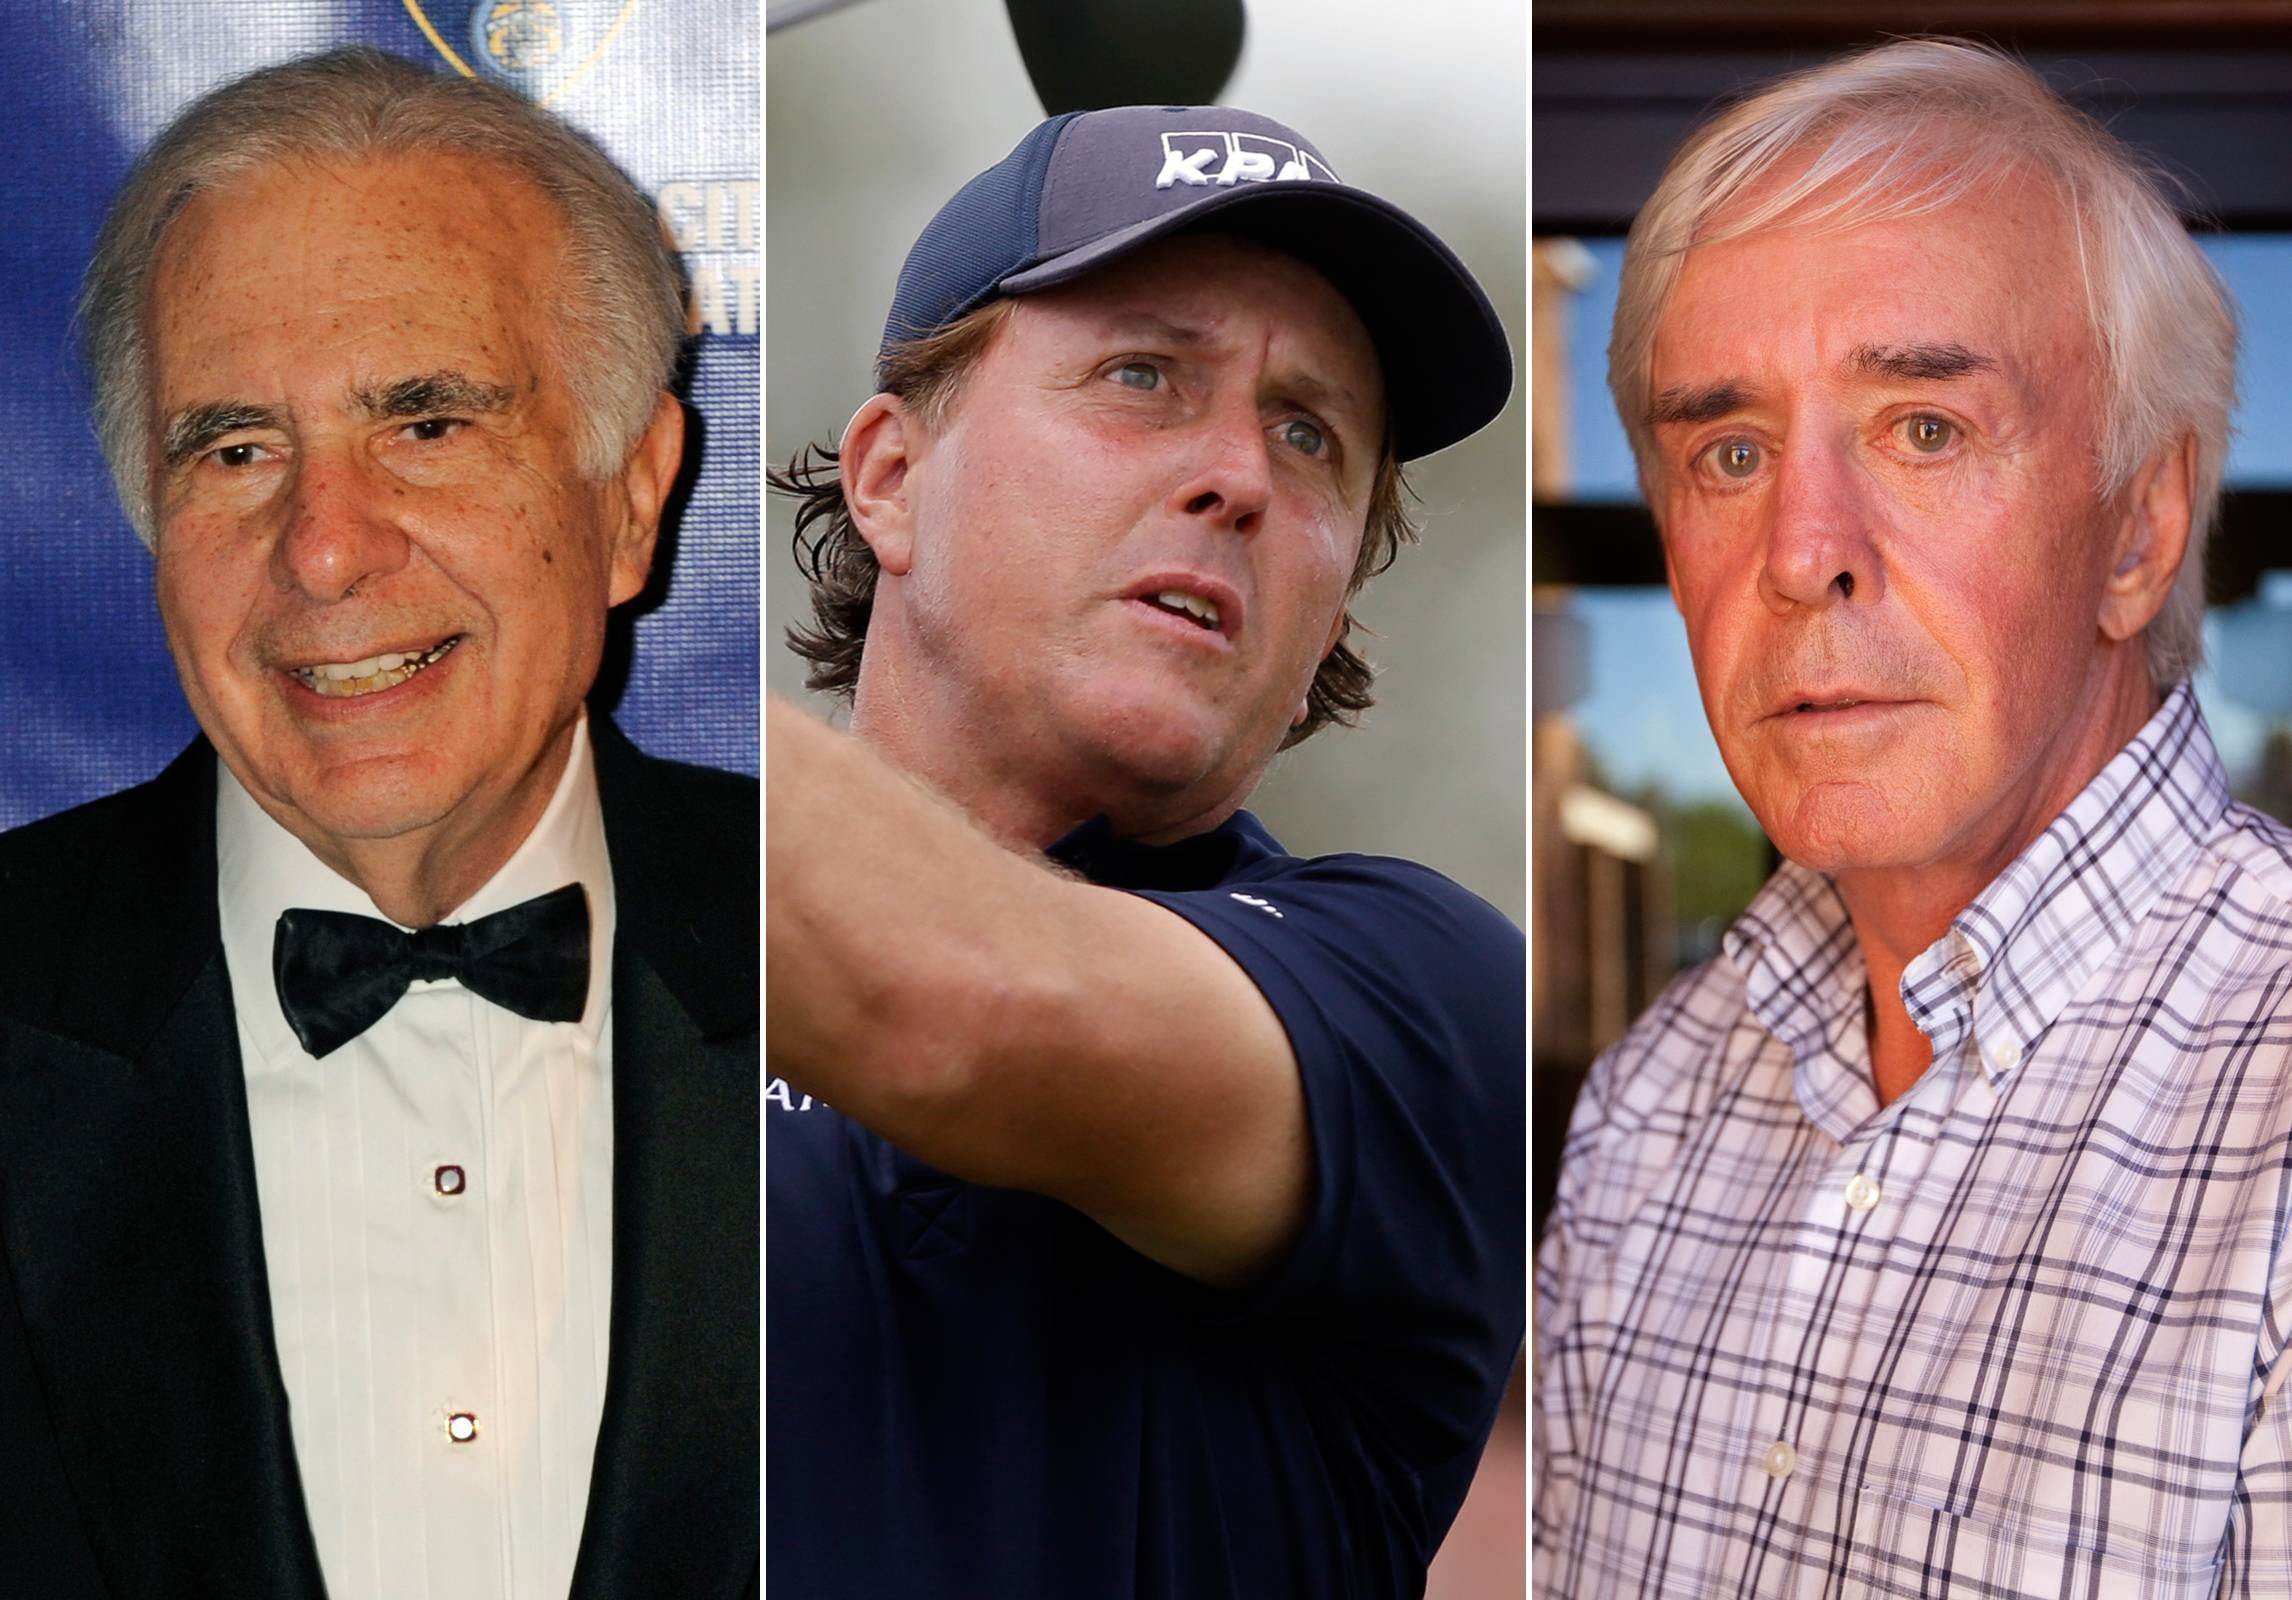 This combo made from file photos shows, from left, financier Carl Icahn, pro golfer Phil Mickelson, and developer and high-profile sports better Billy Walters. A federal official briefed on the investigation told The Associated Press that the FBI and Securities and Exchange Commission are looking at stock trades that Mickelson and Walters made involving Clorox when Icahn was attempting to take over the company. There have been no charges filed against the three men and the investigation could lead to nothing.